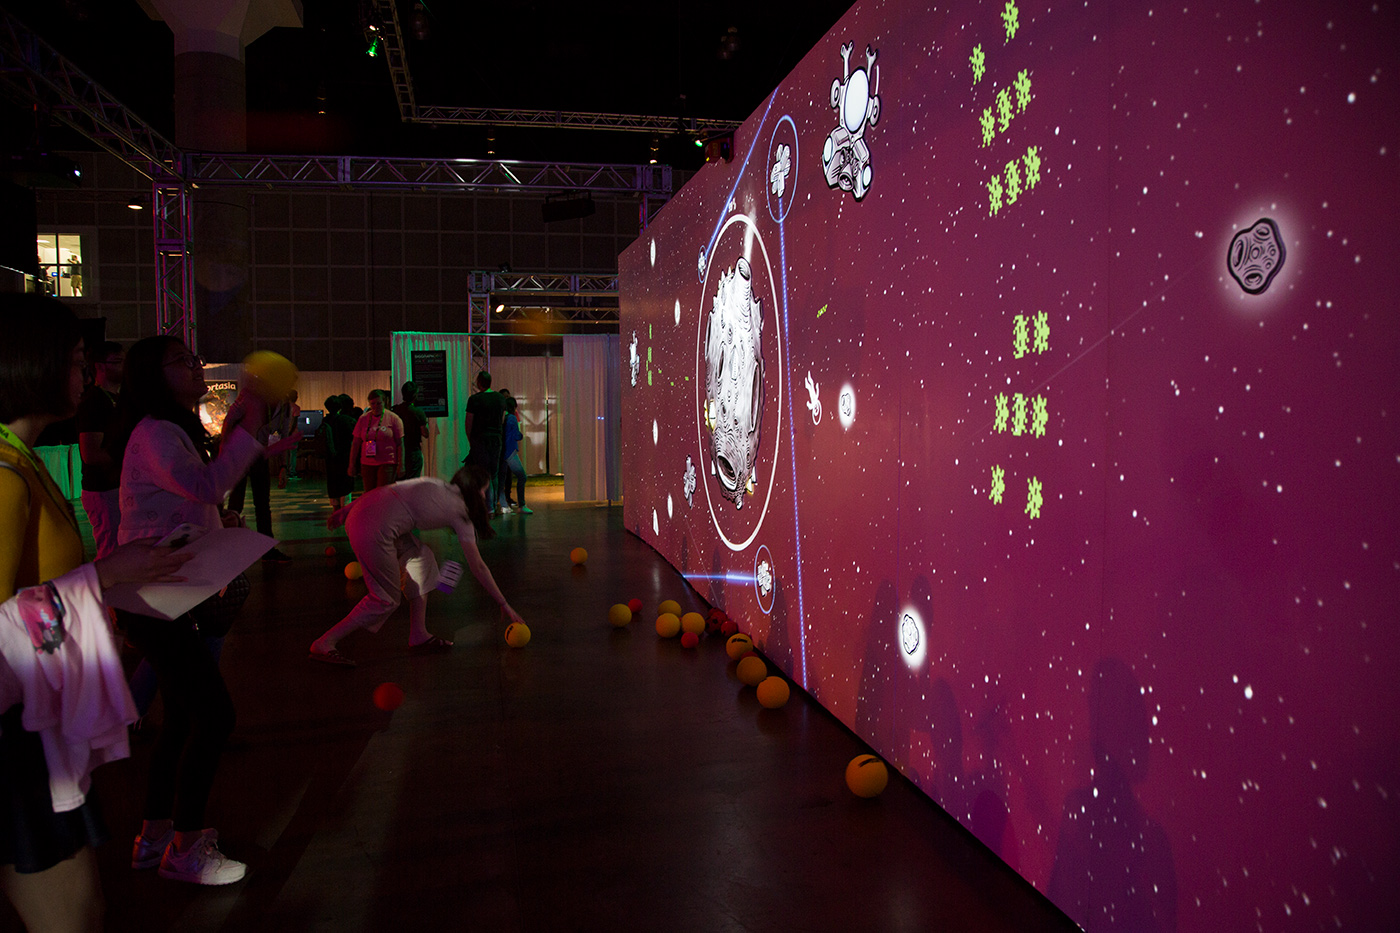 People throwing foam balls at big wall with a projected game featuring aliens and astronauts.